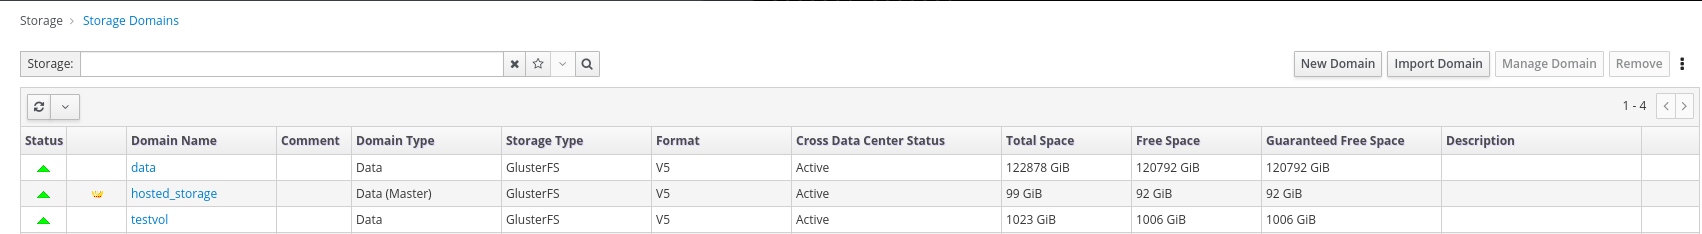 Administration Console storage domain dashboard